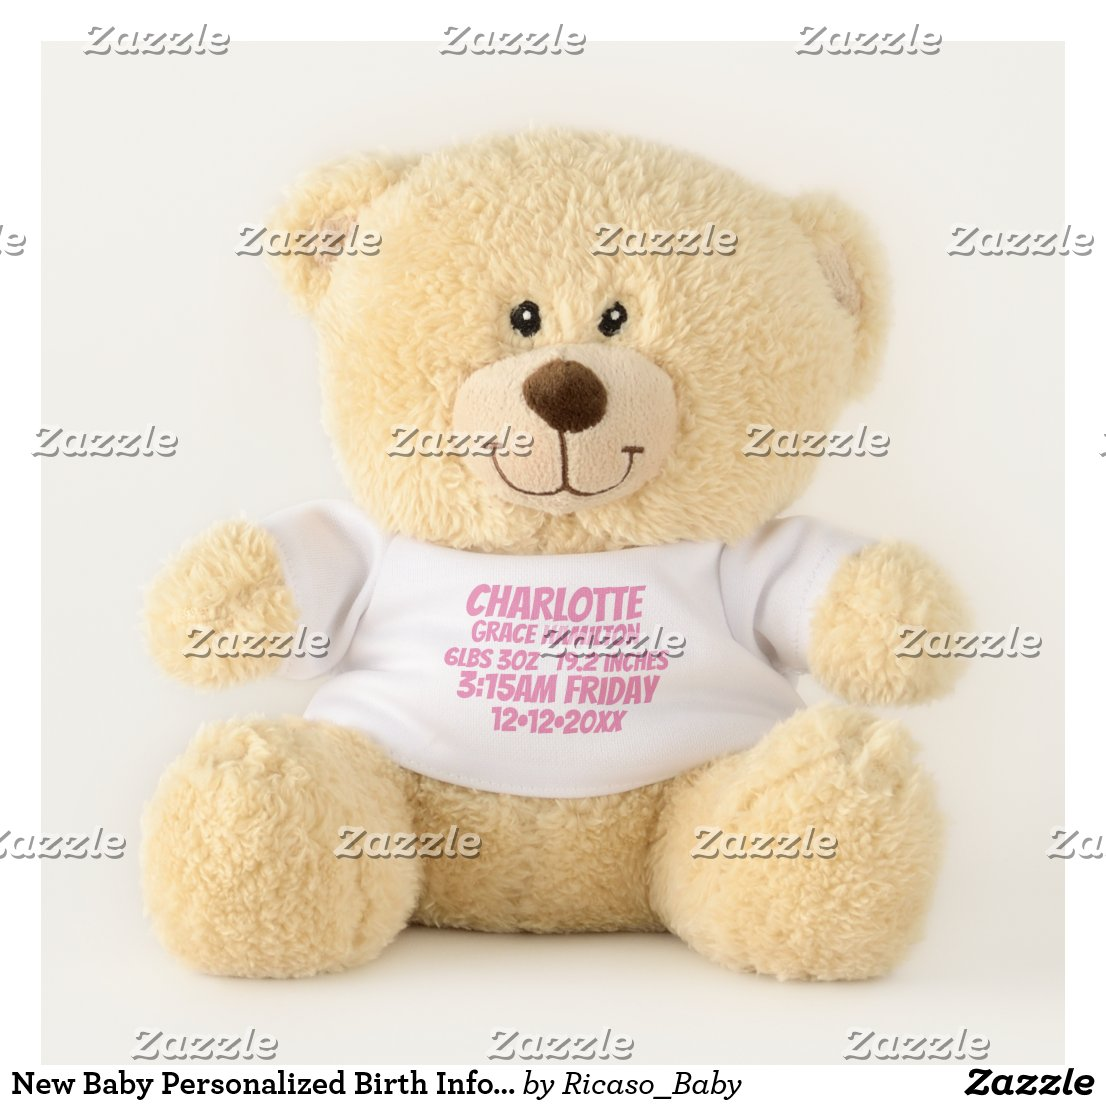 New Baby Personalized Birth Information (pink)